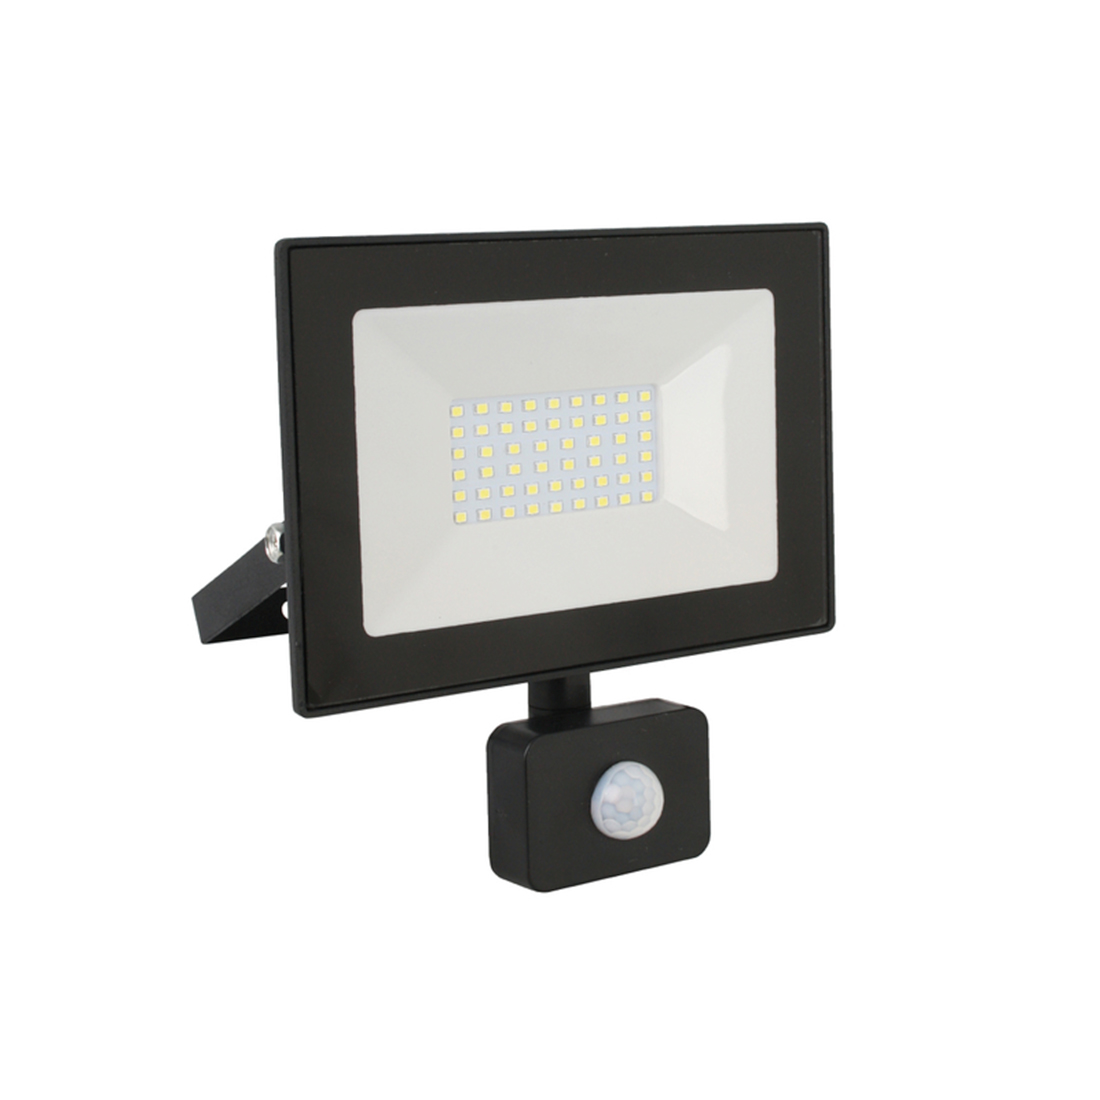 Прожектор LED с датчиком Ultraflash LFL-3002S C02 (30Вт., 6500К)